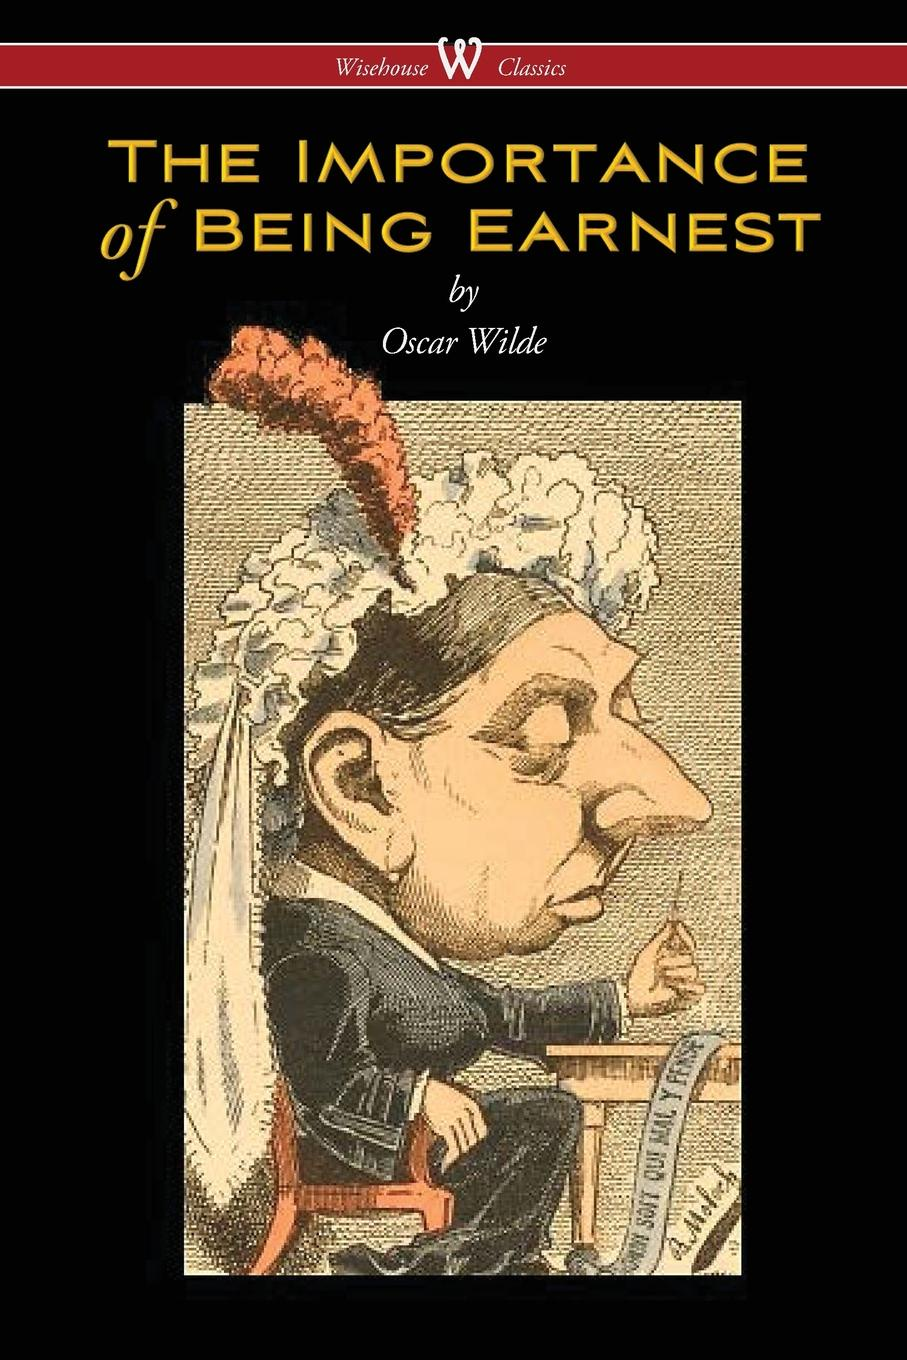 Oscar Wilde The Importance of Being Earnest (Wisehouse Classics Edition) oscar wilde the ballad of reading gaol a poetry